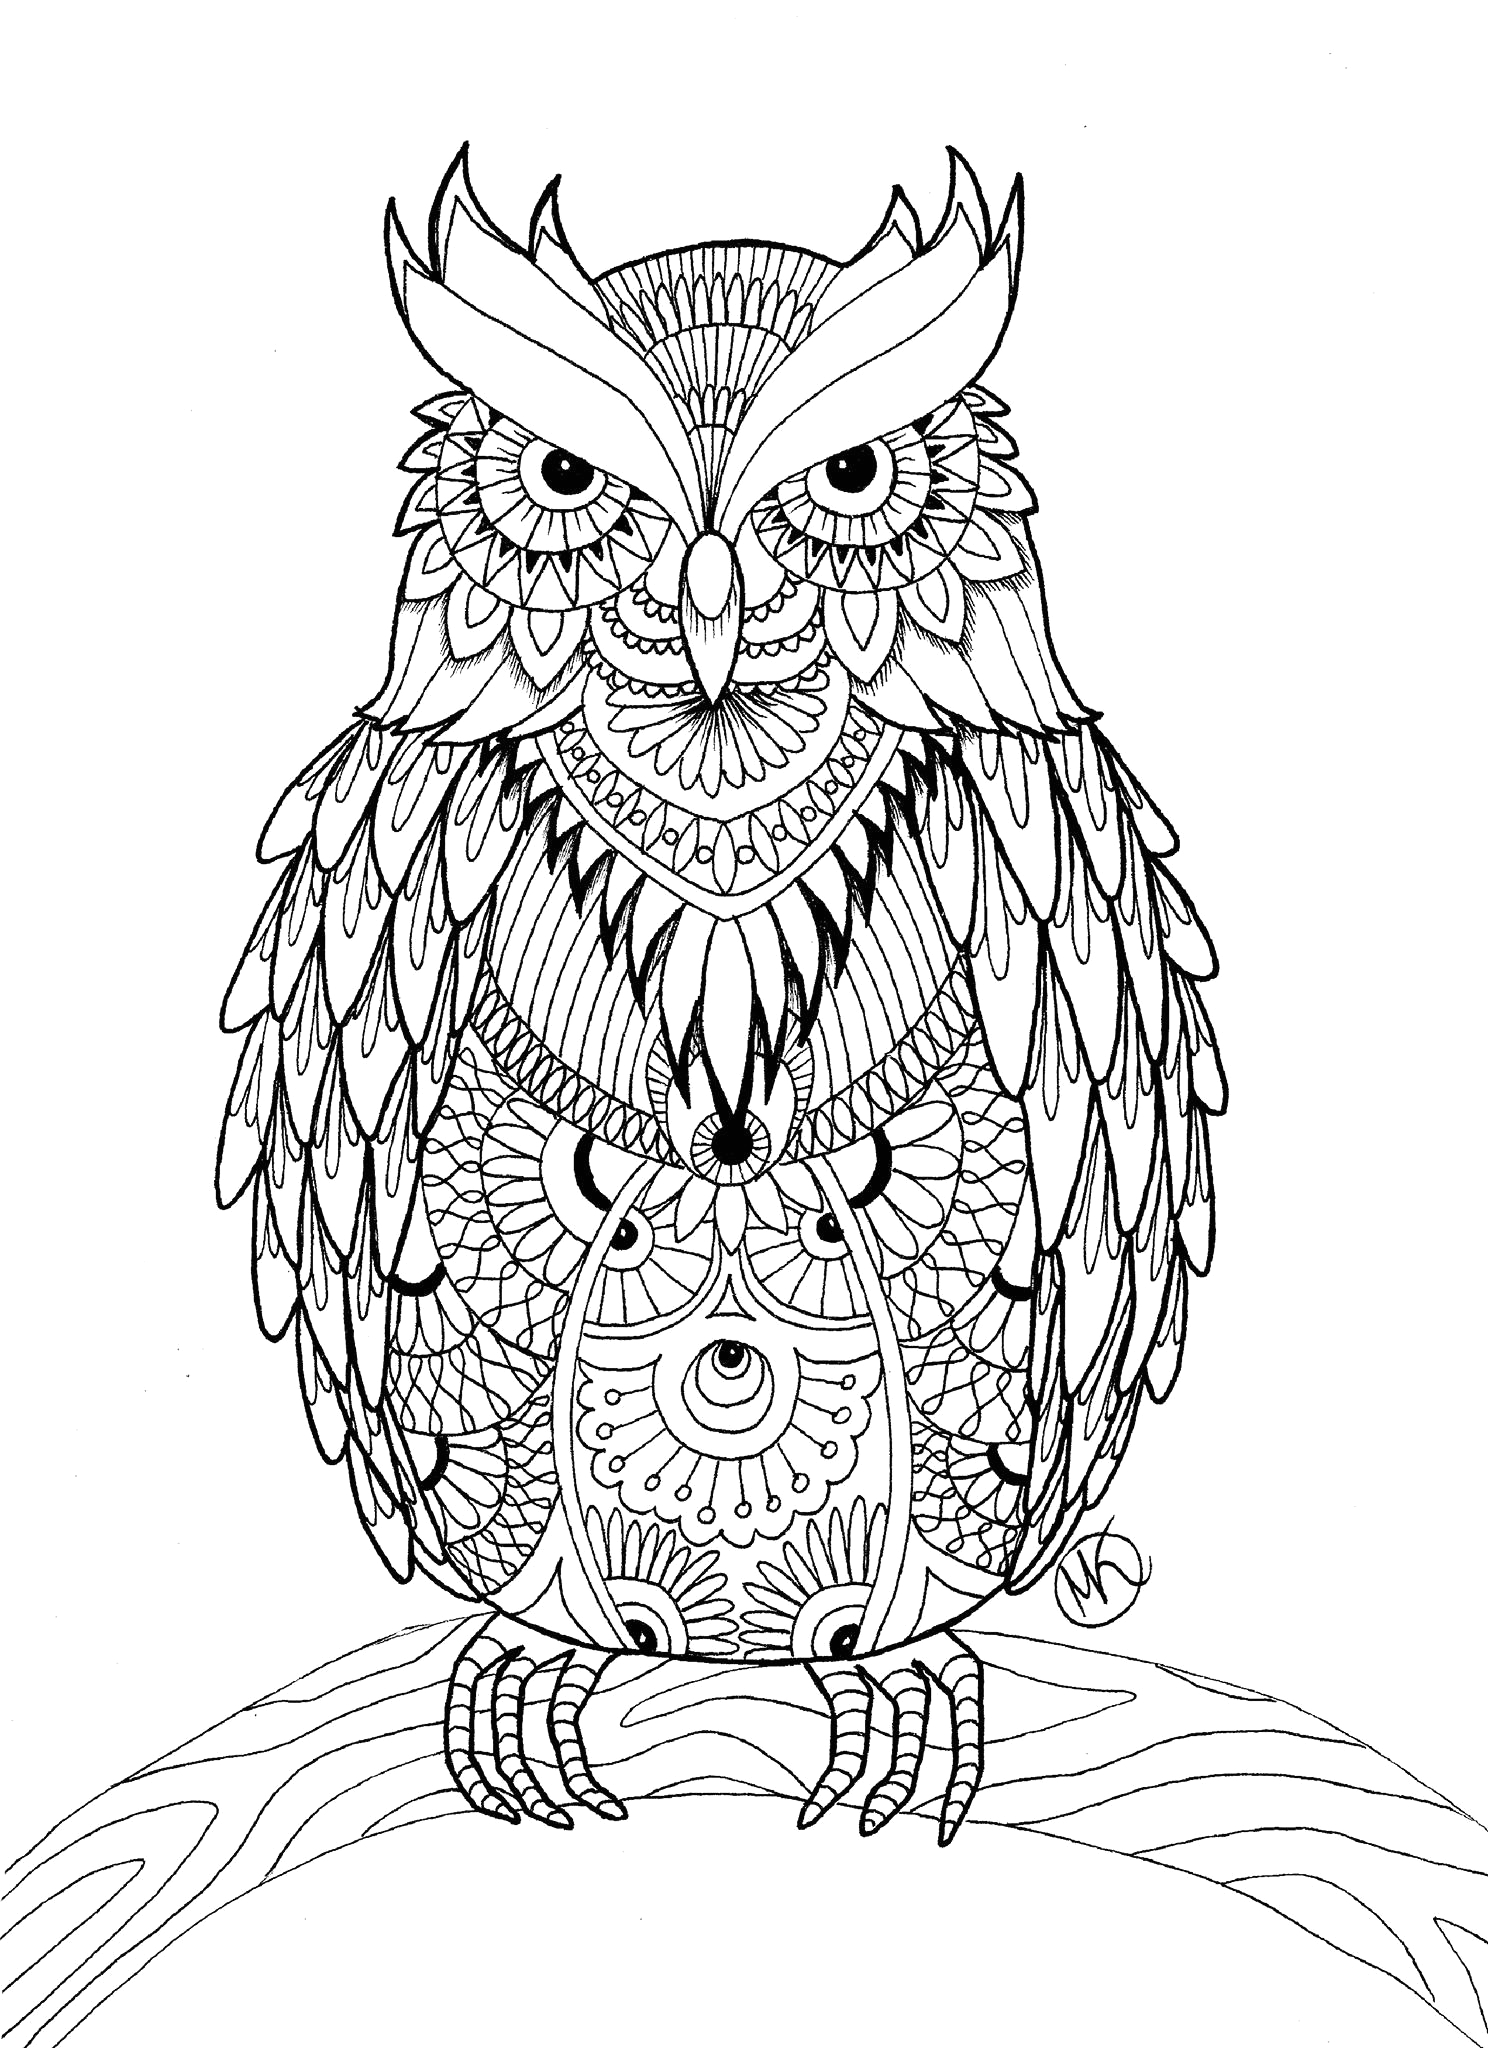 Owl Coloring Pages for Adults to Print Owl Coloring Pages for Adults Free Detailed Owl Coloring